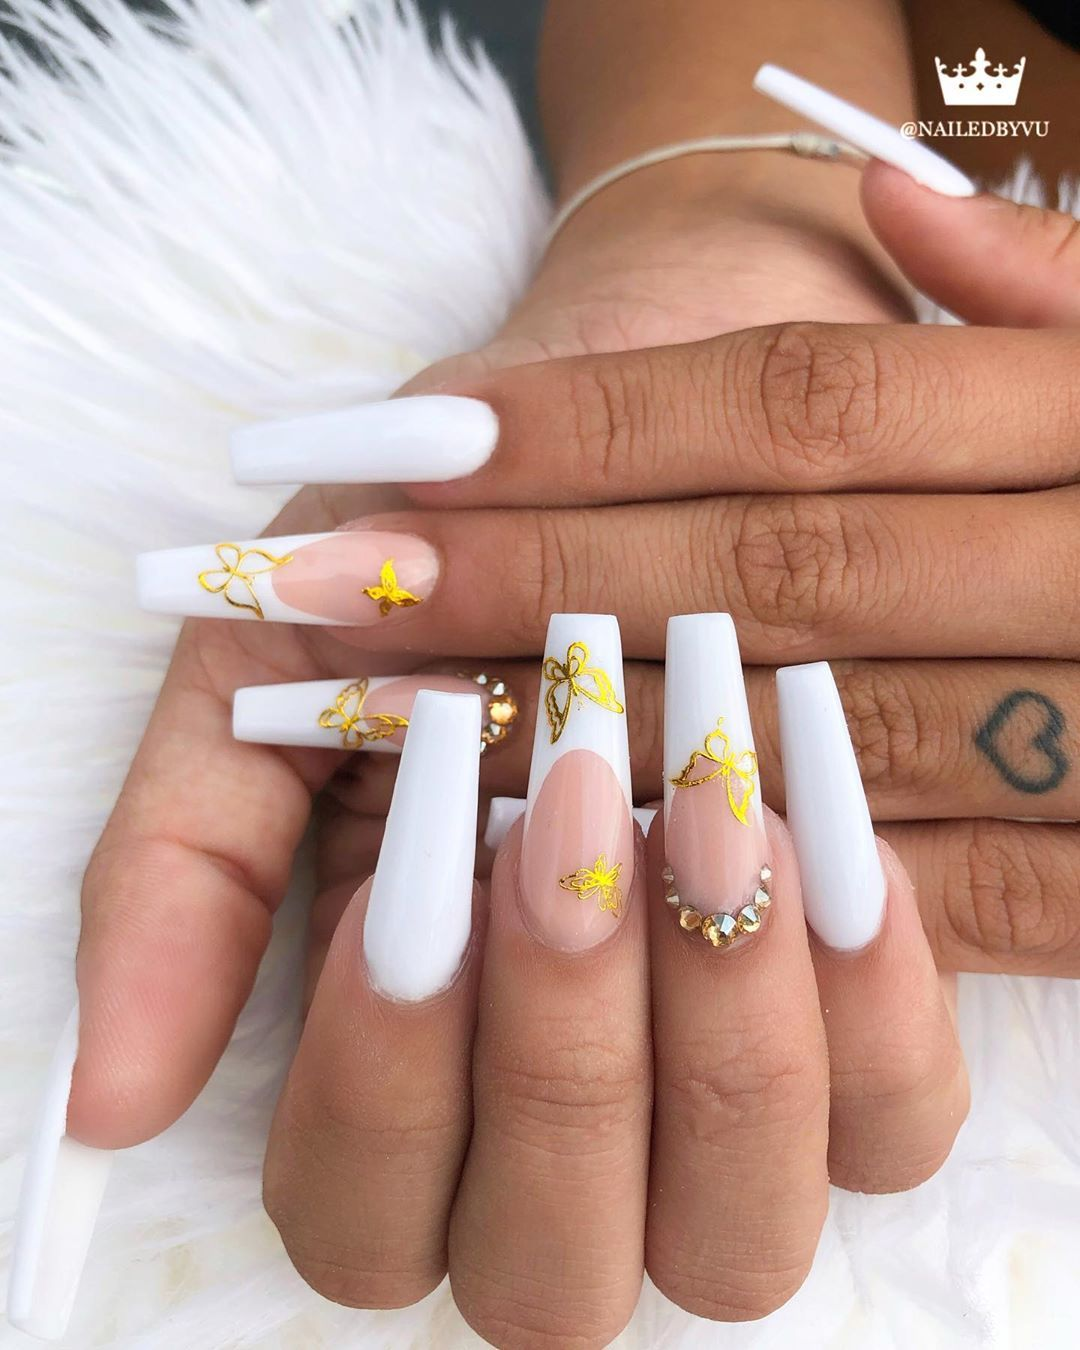 454 Likes 10 Comments Vu Tran Nailedbyvu On Instagram Golden Butterflies On Classic French Using Dch N In 2020 Nails White Tip Nails Blue Acrylic Nails